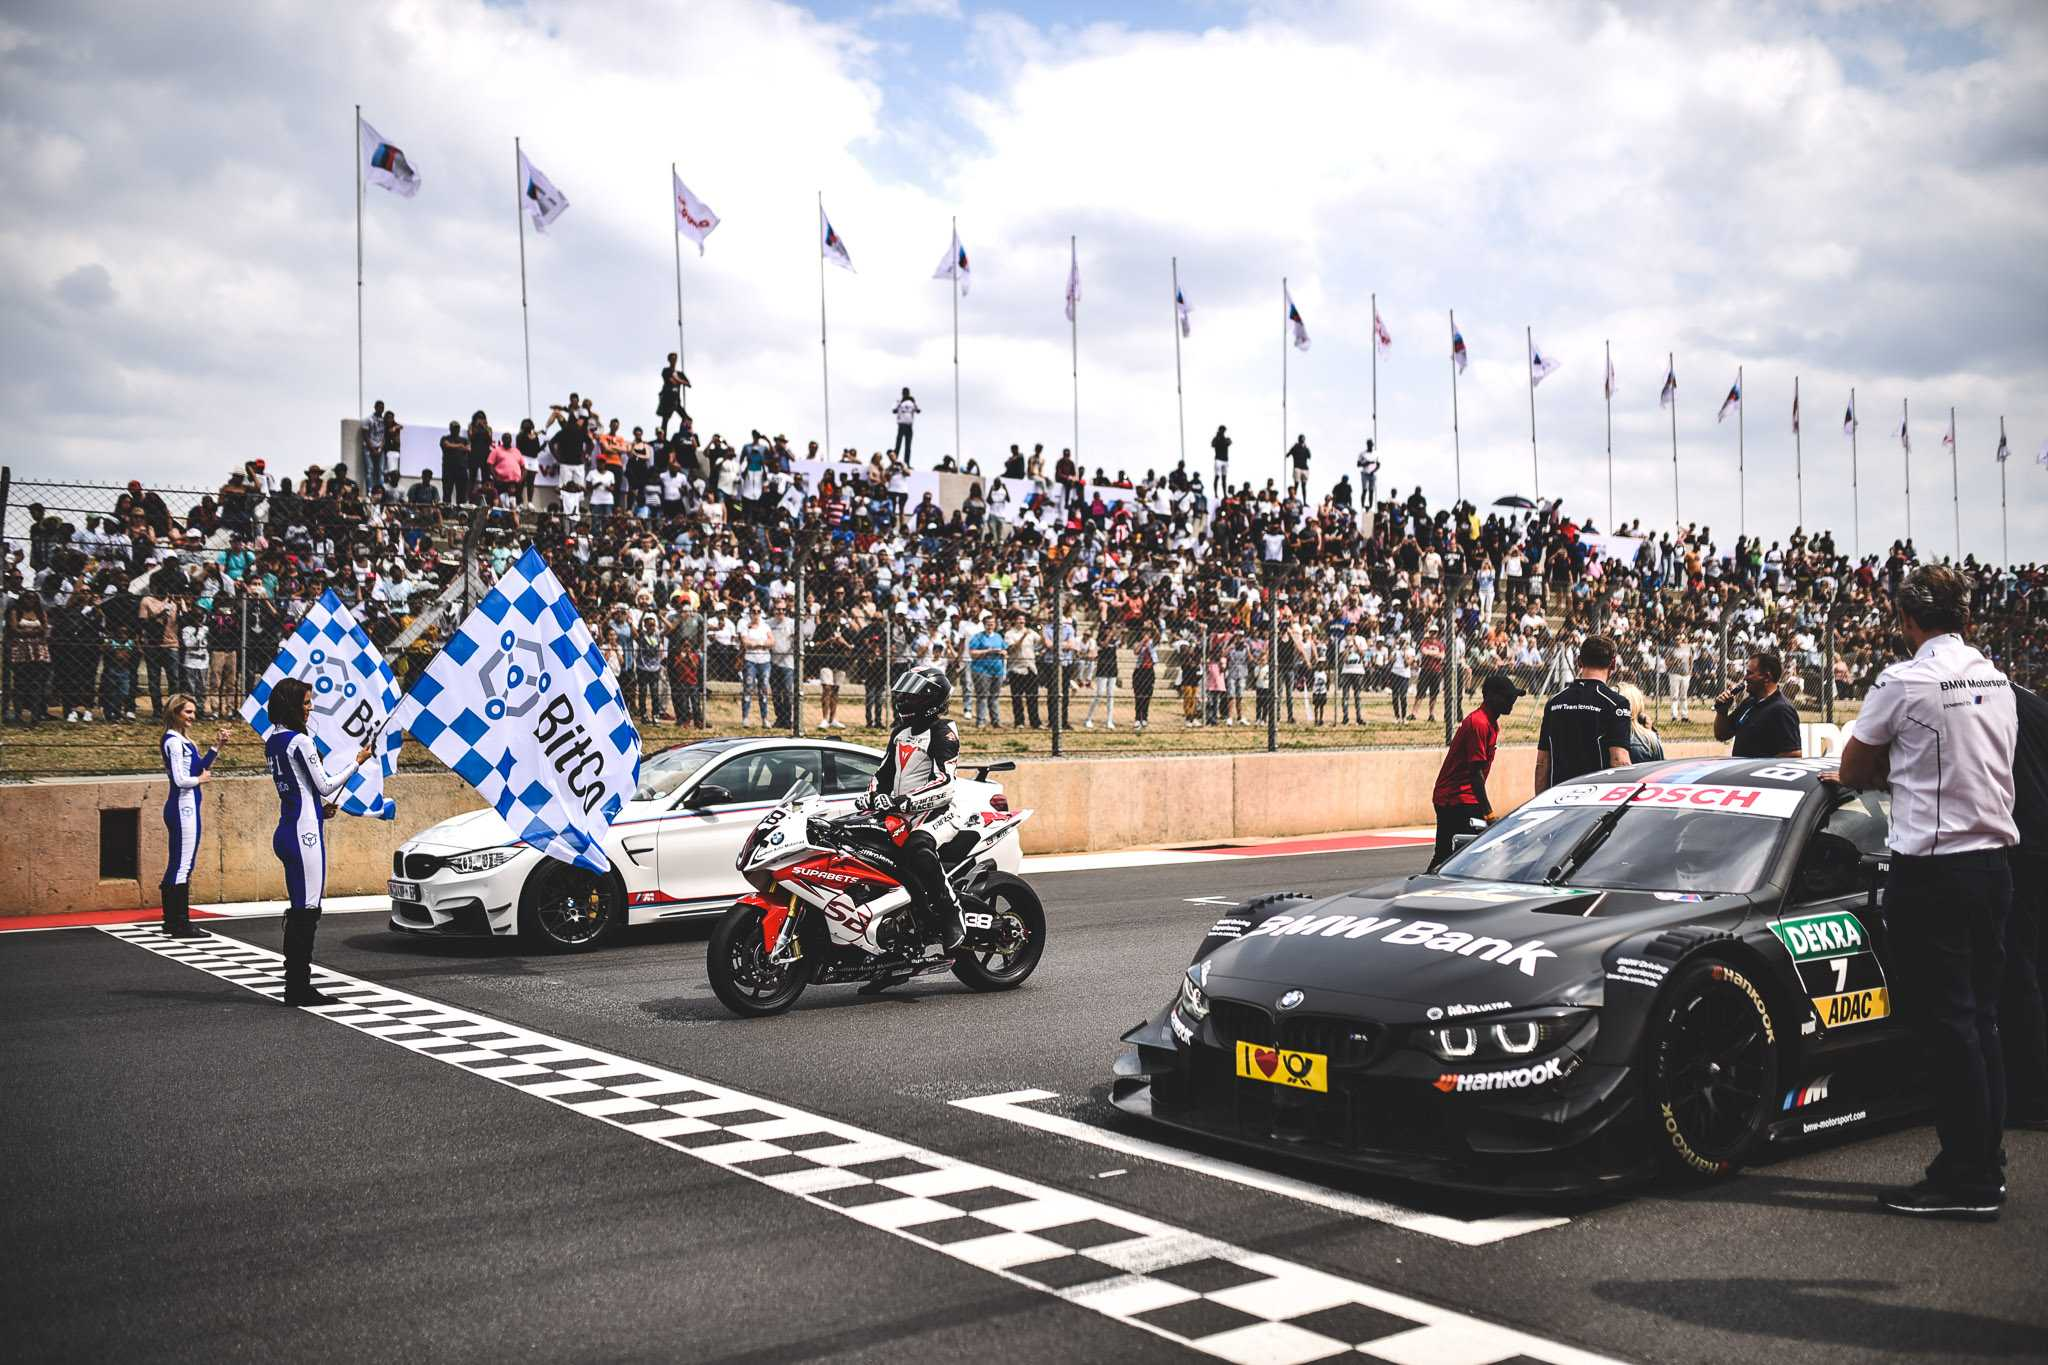 The First Ever Bmw M Festival In South Africa Attracts Just Under